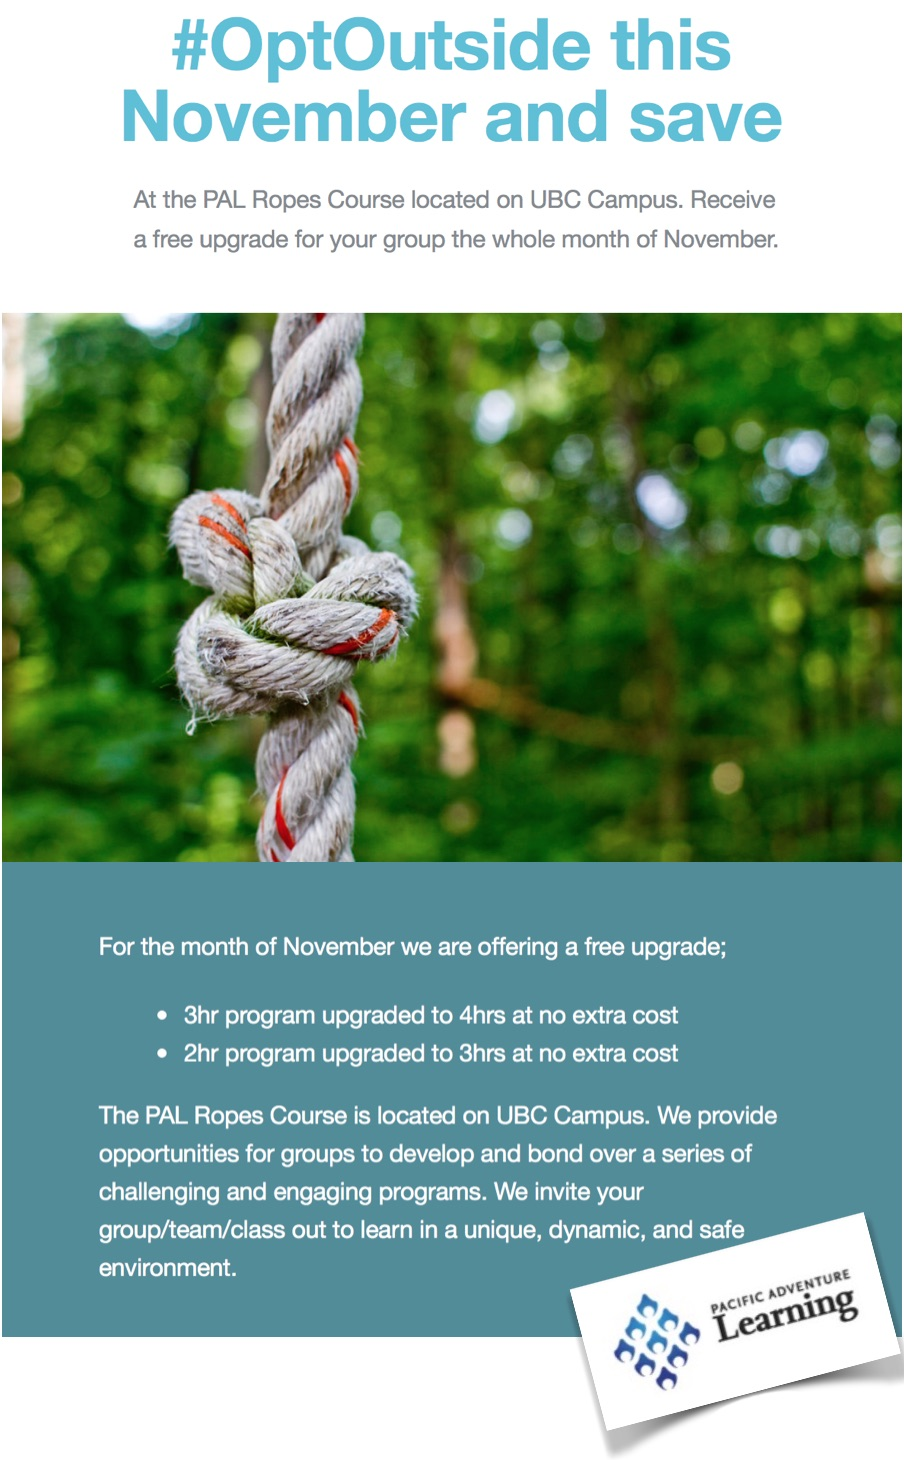 email info@palropescourse.com for more information